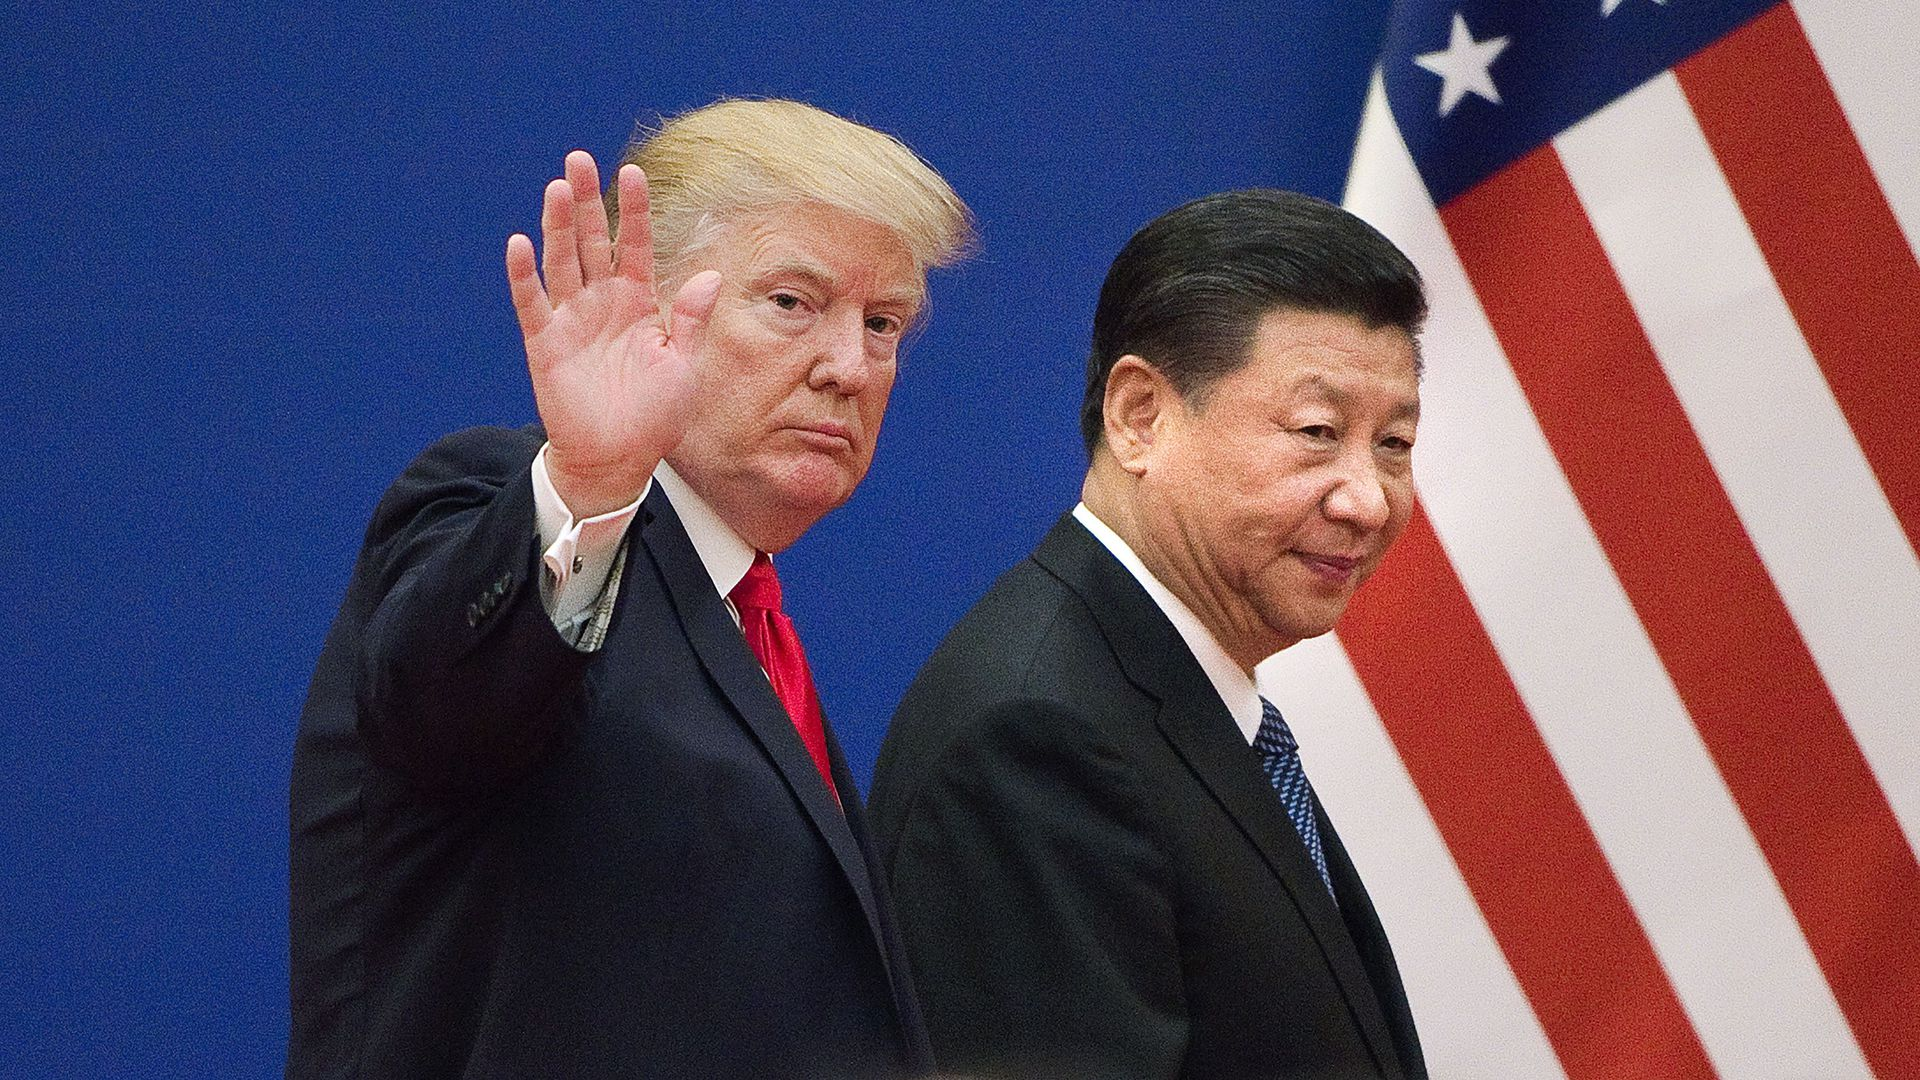 President Trump with Chinese President Xi Jinping